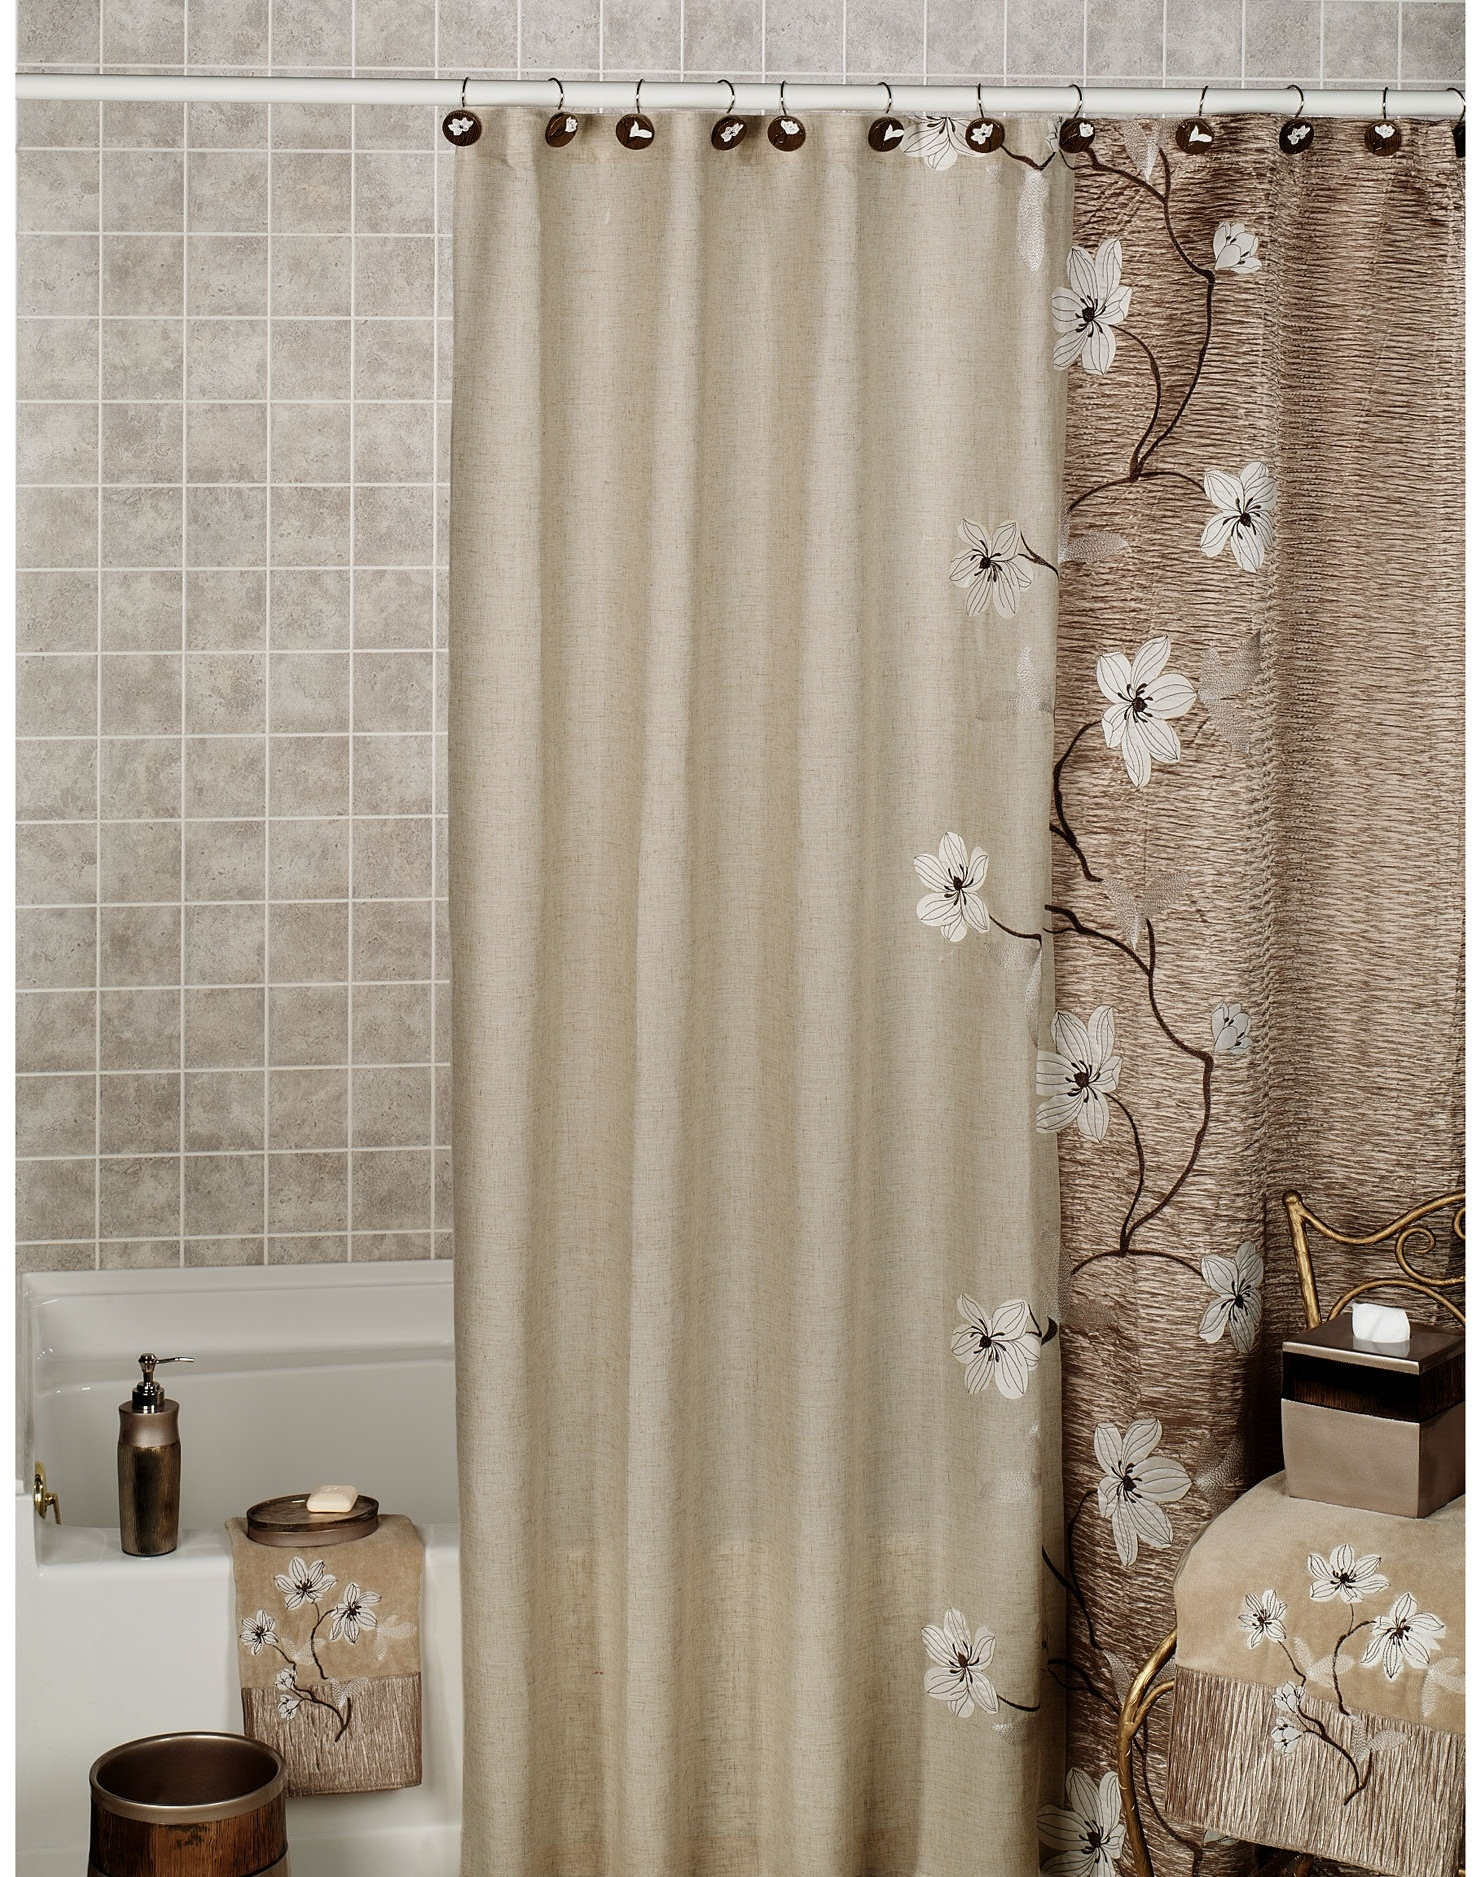 Extra Long Blackout Curtains Home Design Ideas Gigforest With Regard To Extra Long Curtains (Image 7 of 15)